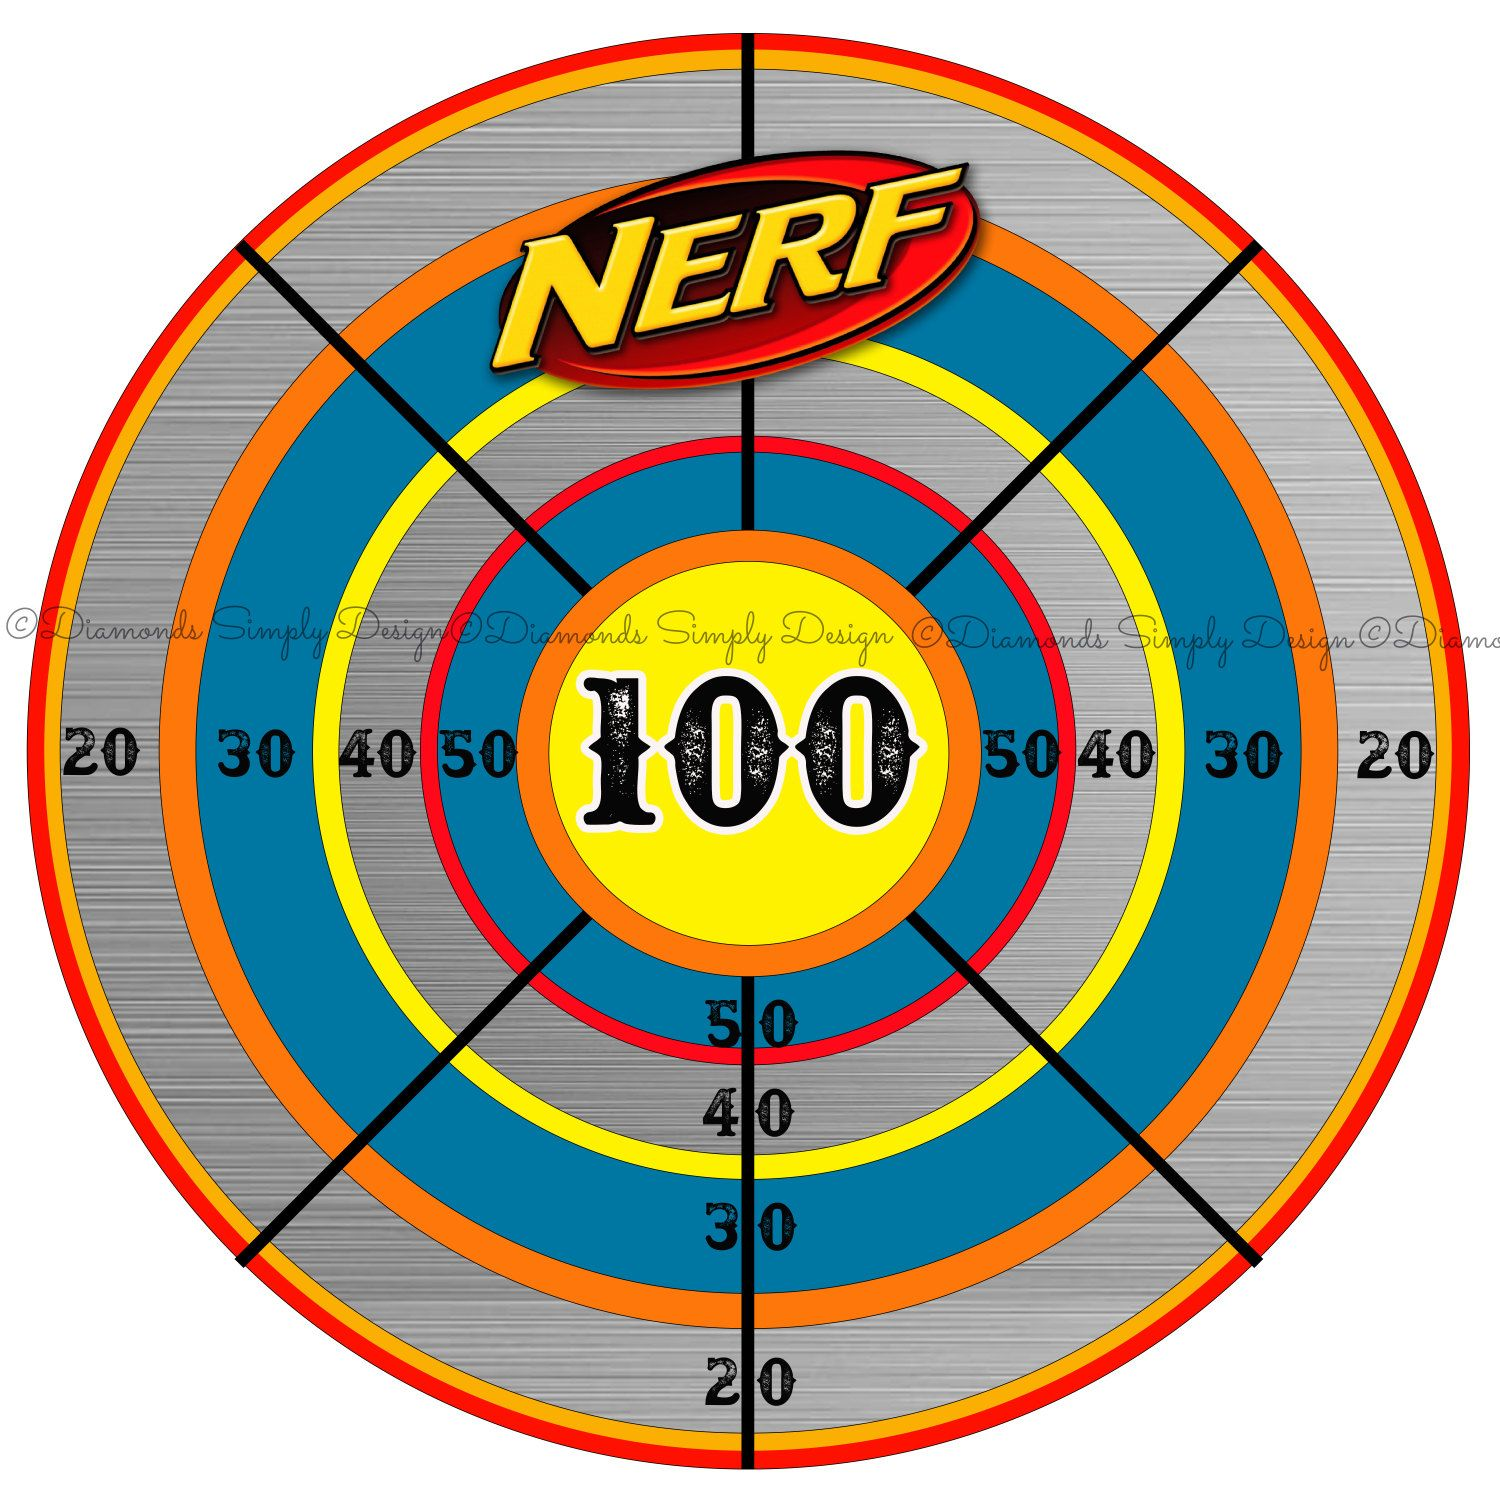 Enterprising image with printable nerf targets